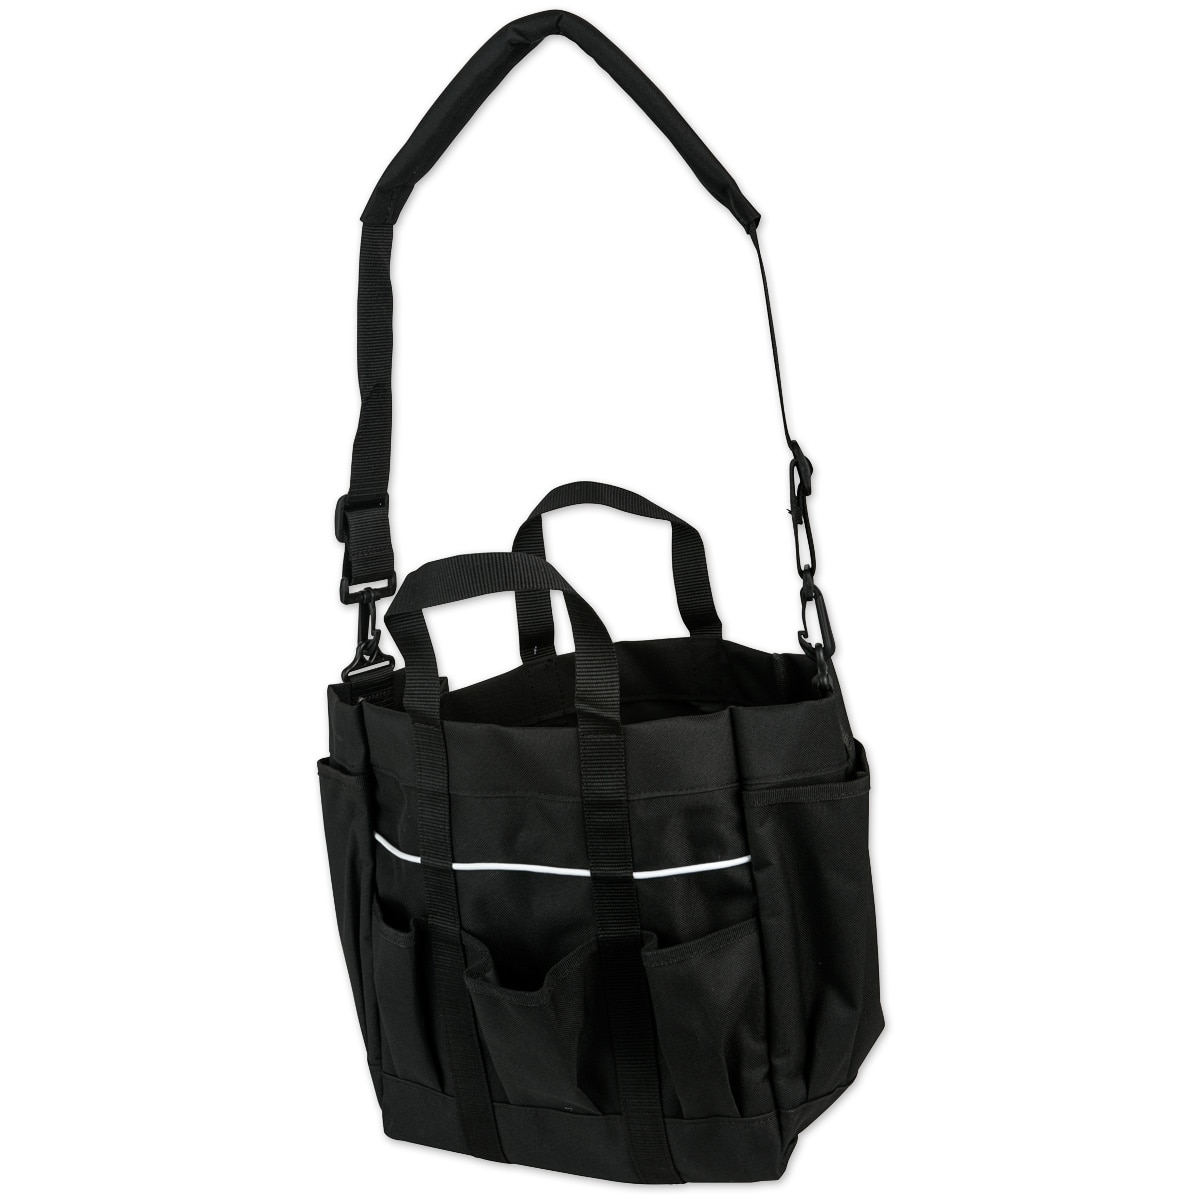 Stable Kit Tote Bag Deluxe